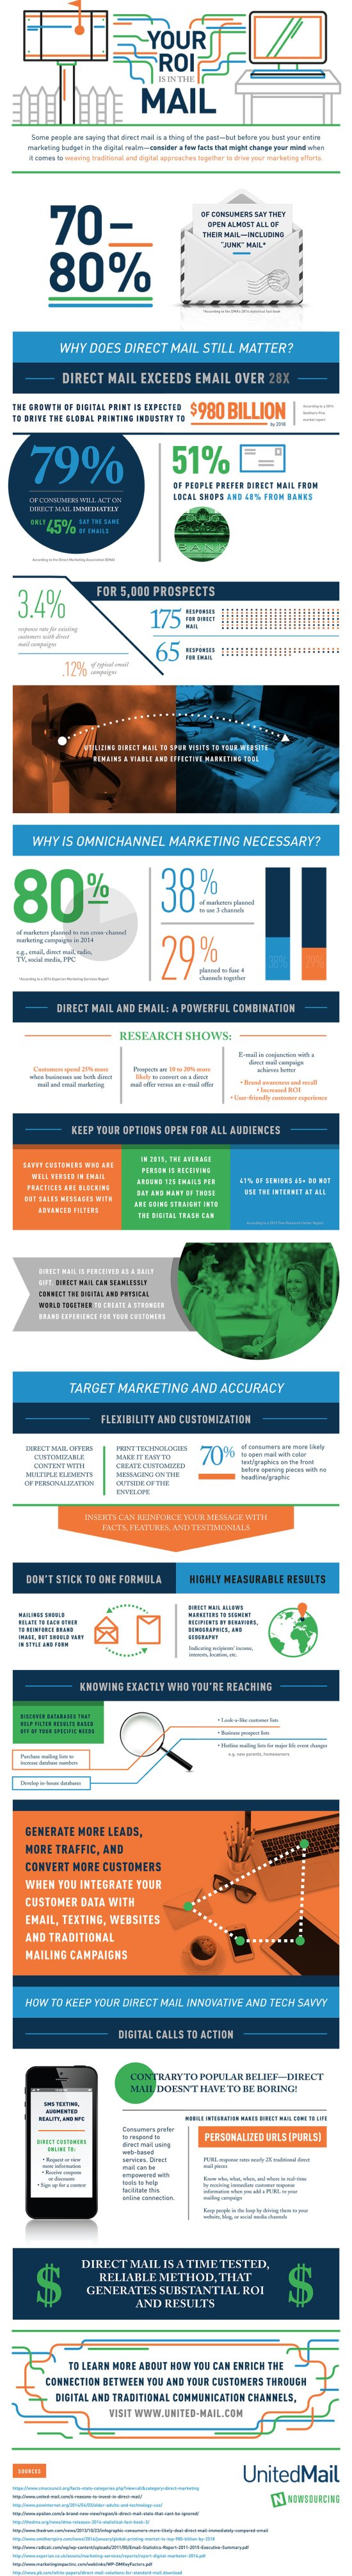 UnitedMail_Direct_Mail_Infographic2